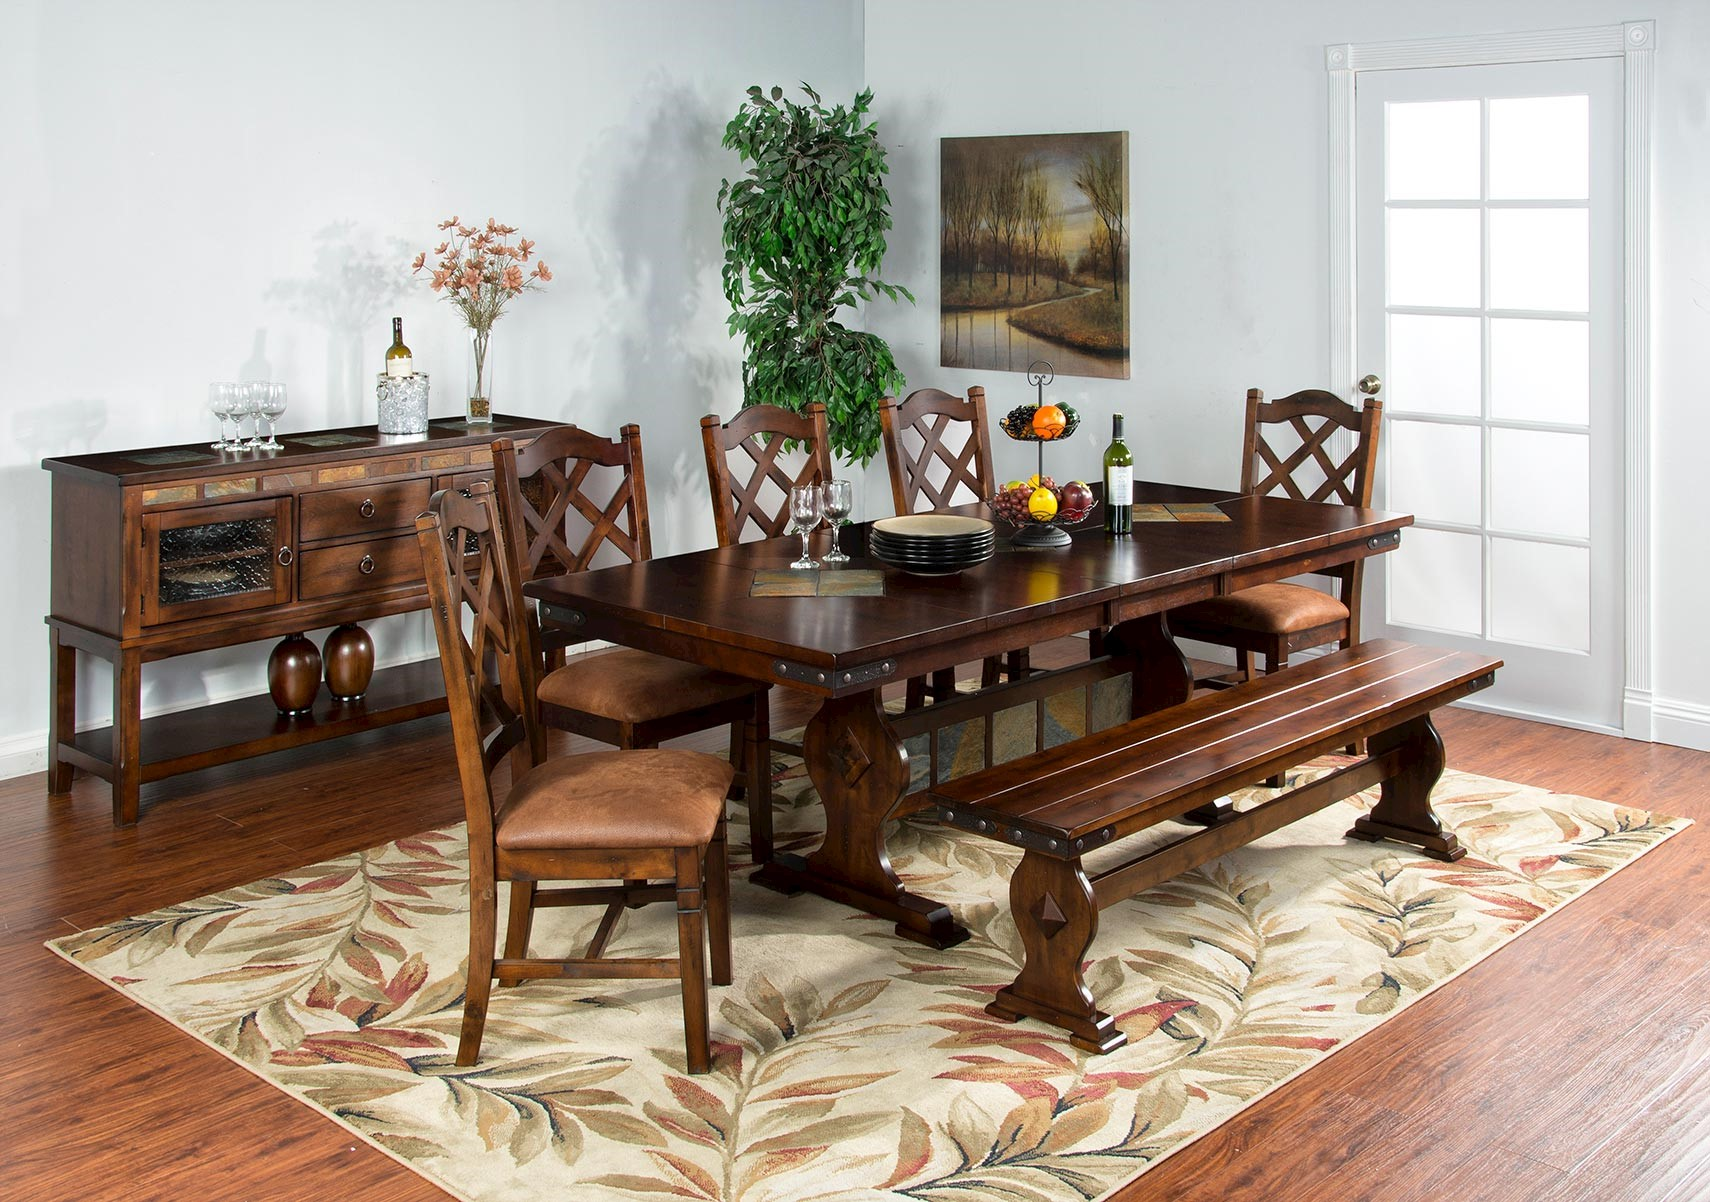 Santa Fe 6 Pc Trestle Table Dining Set